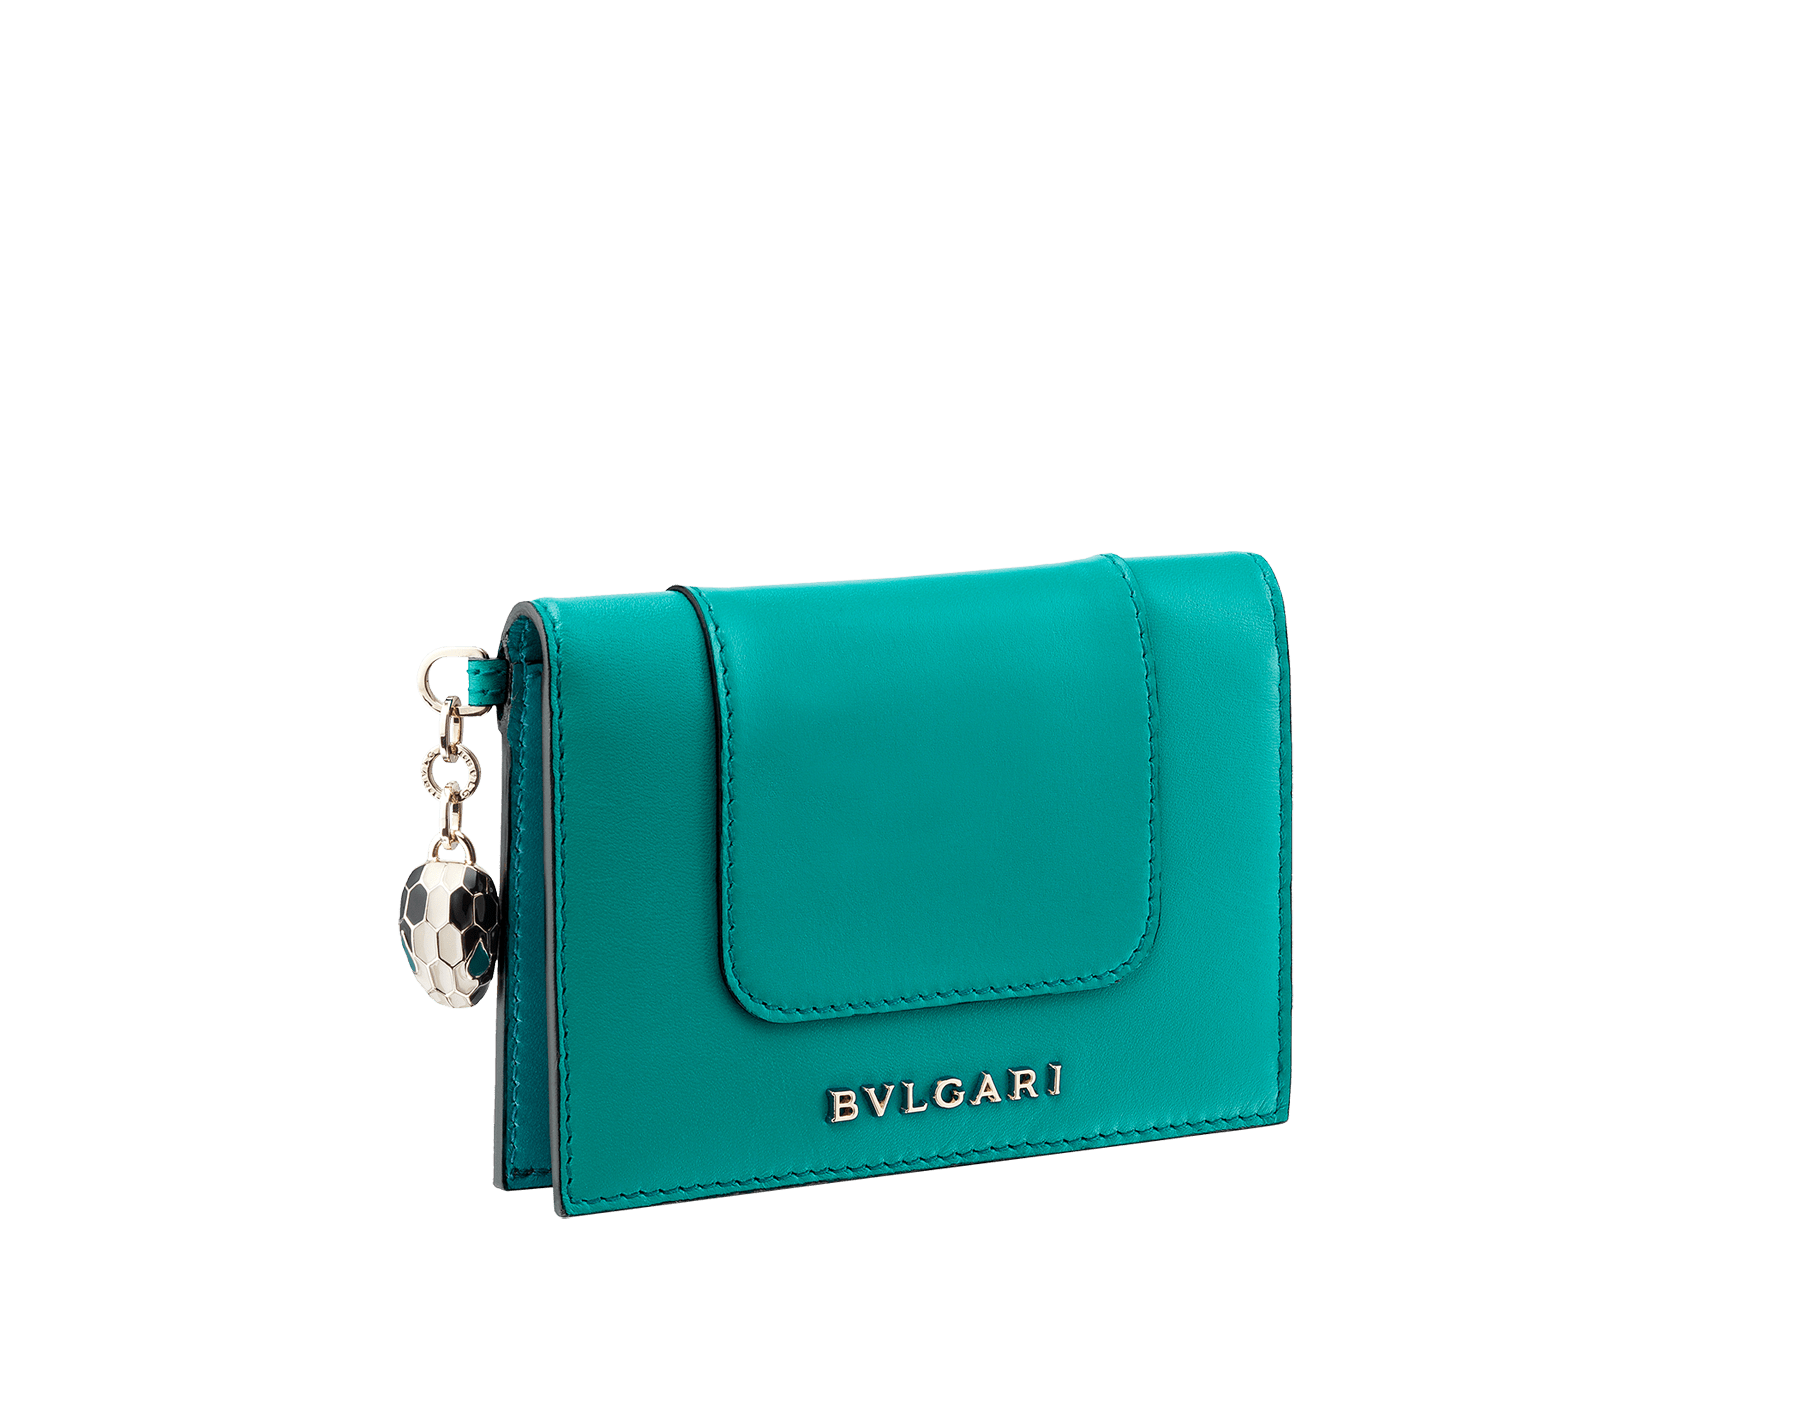 Serpenti Forever folded credit card holder in Roman garnet and pink spinel calf leather. Snakehead charm with black and white enamel, and green malachite enamel eyes. SEA-CC-HOLDER-FOLD-CLc image 1